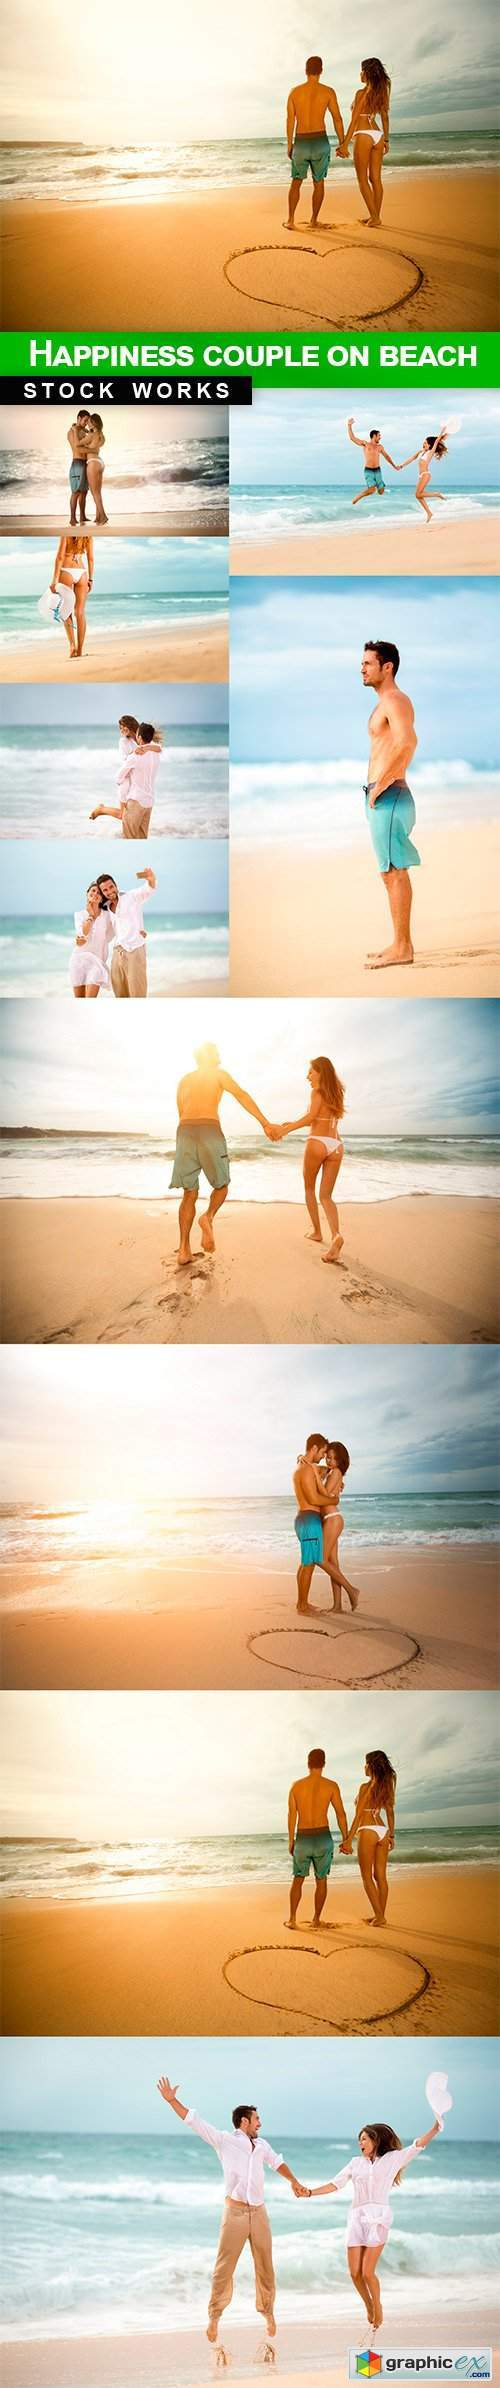 Happiness couple on beach - 10 UHQ JPEG